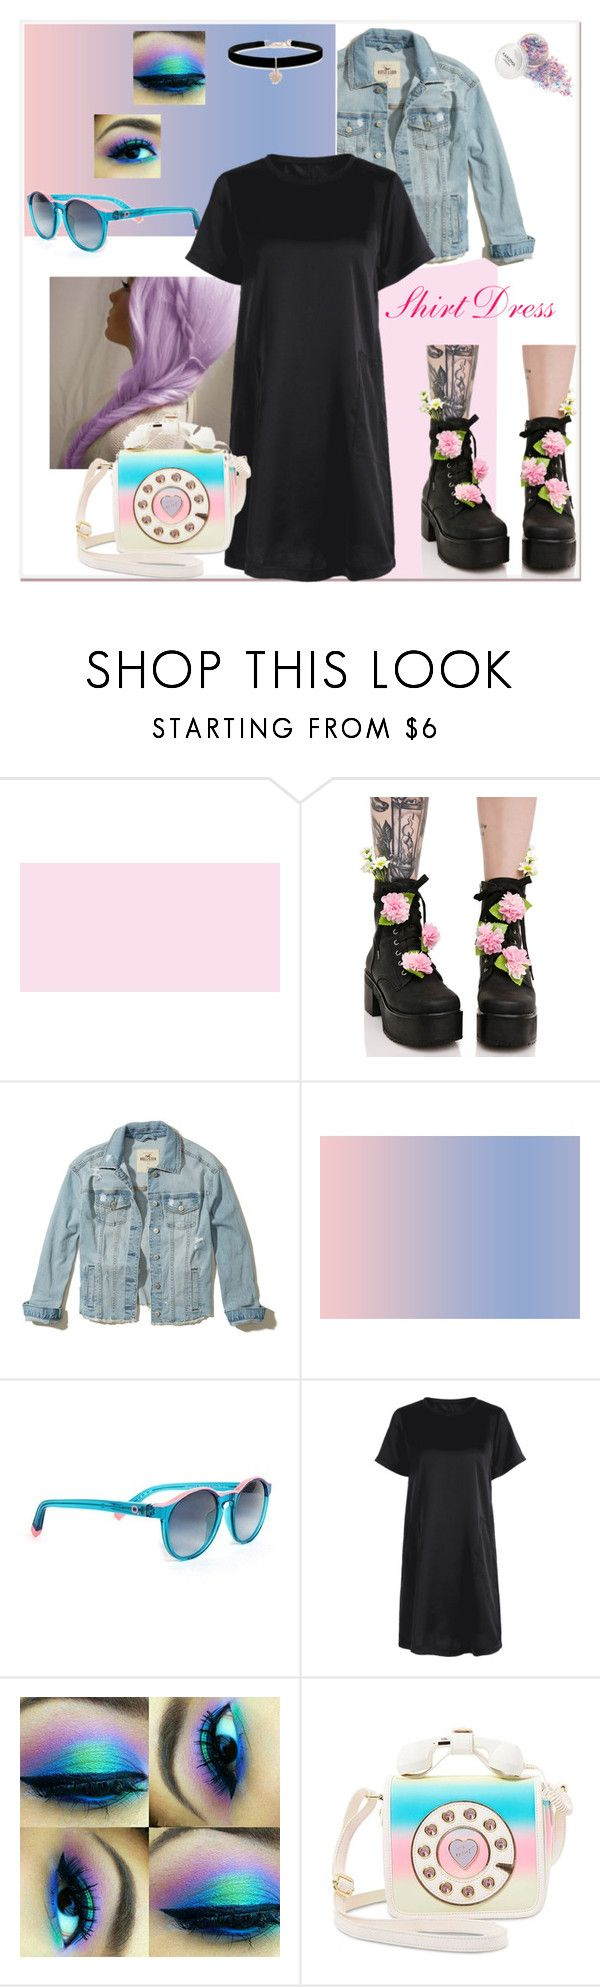 """Shirt Dress"" by tattooedmum on Polyvore featuring Sugar Thrillz, Hollister Co., Etnia Barcelona, Betsey Johnson, shirtdress, contestentry and dollskill"